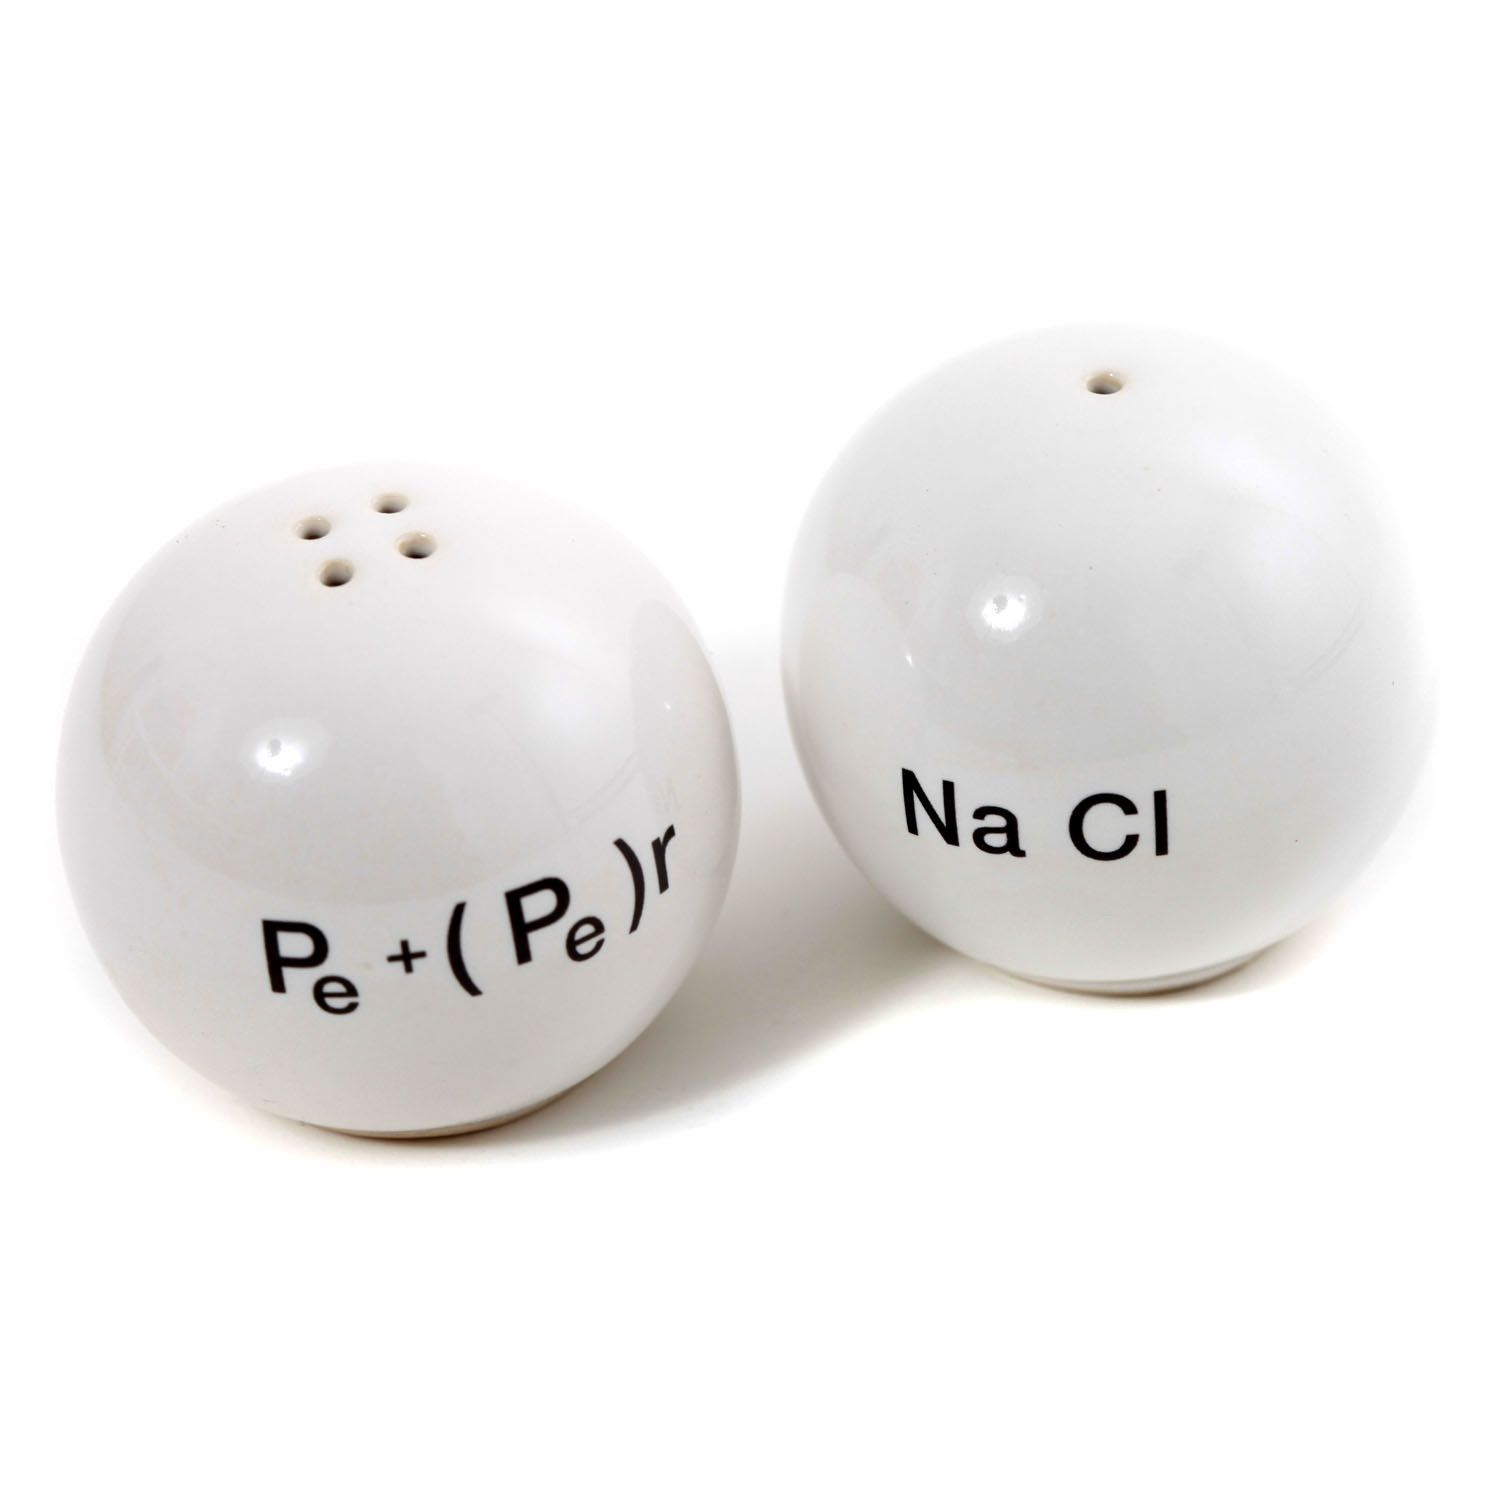 chemistry salt and pepper shakers  these are so cool  - chemistry salt and pepper shakers  these are so cool )